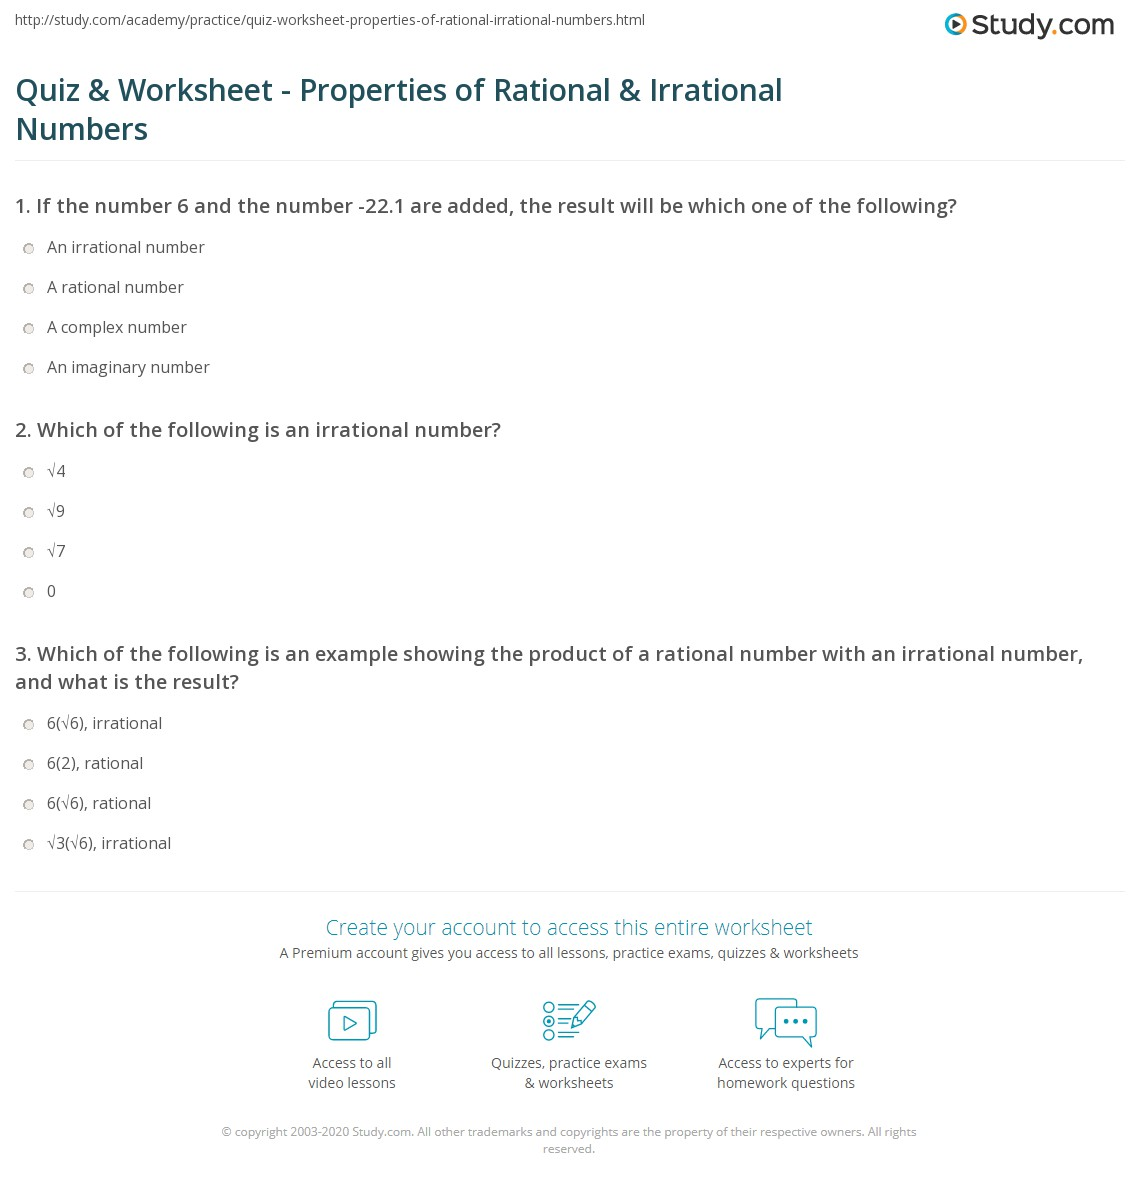 Quiz Worksheet Properties of Rational Irrational Numbers – Rational and Irrational Numbers Worksheet